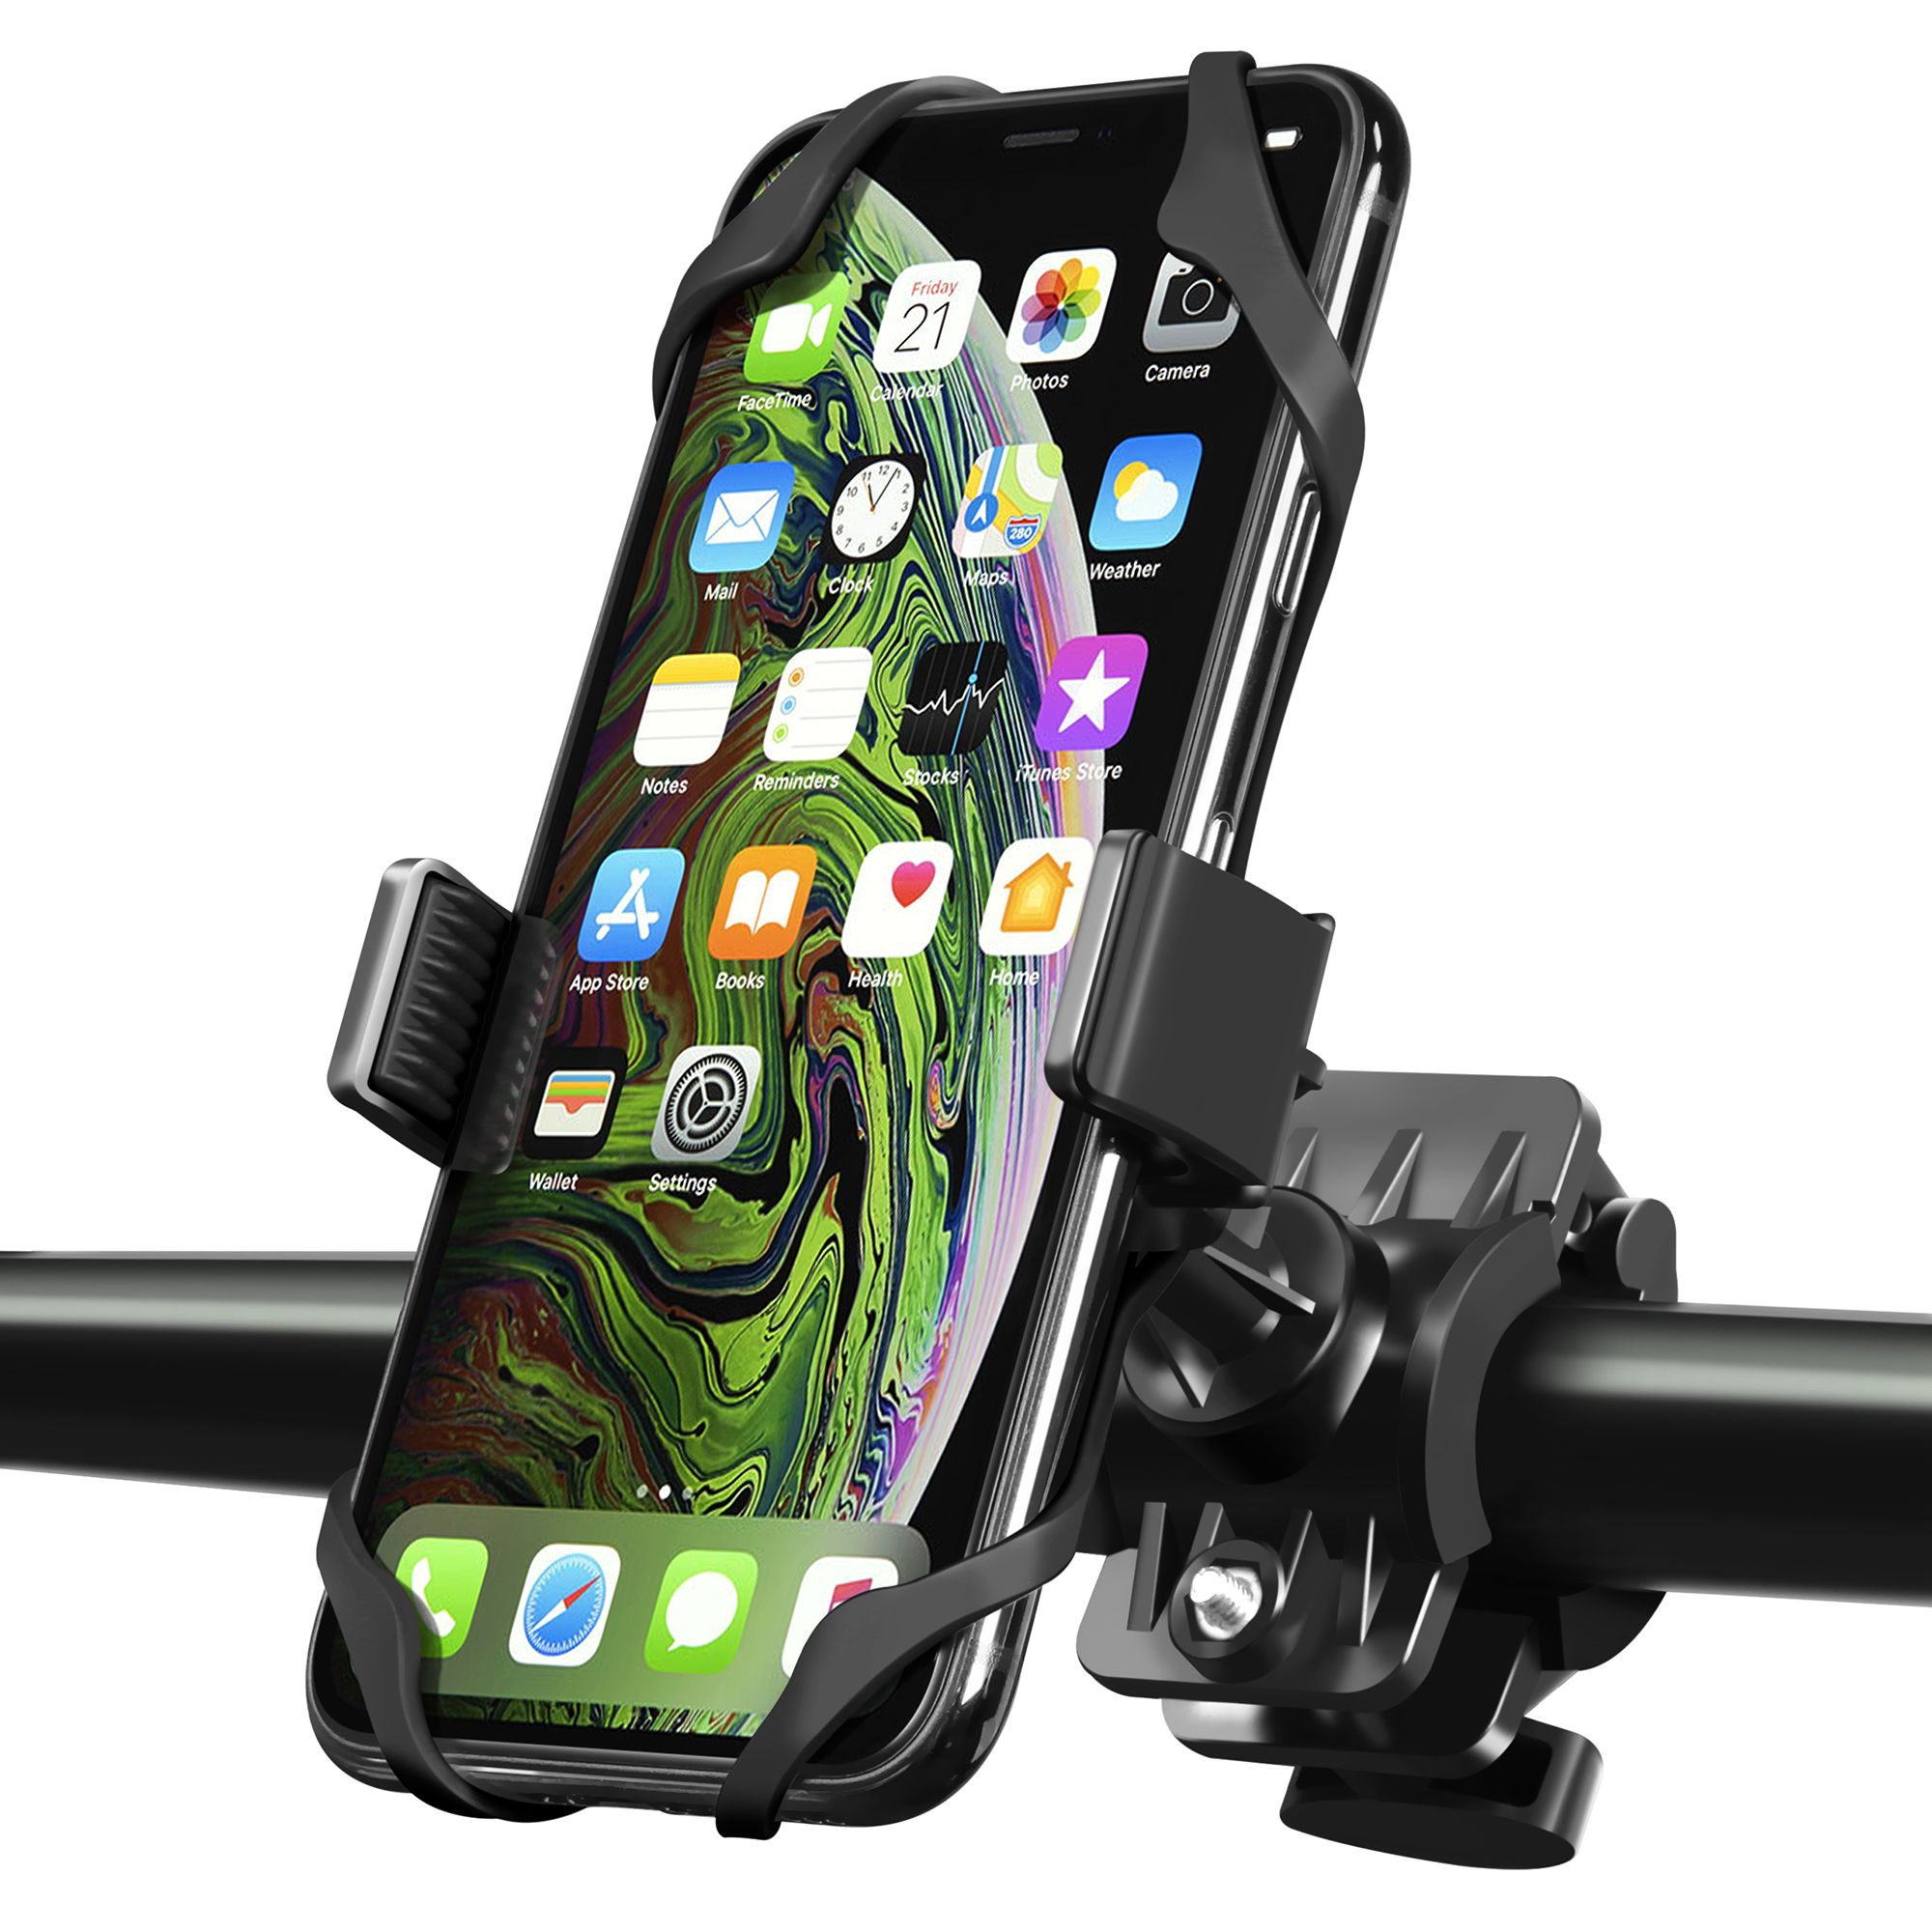 Adjustable Silicon Universal Fit Handlebars and Smart Phones Like iPhone Xs Max R X 8 Plus 7 Samsung ANCwear 5-in-1 Portable Charger and Phone Holder Bike Motorcycle Phone Mount